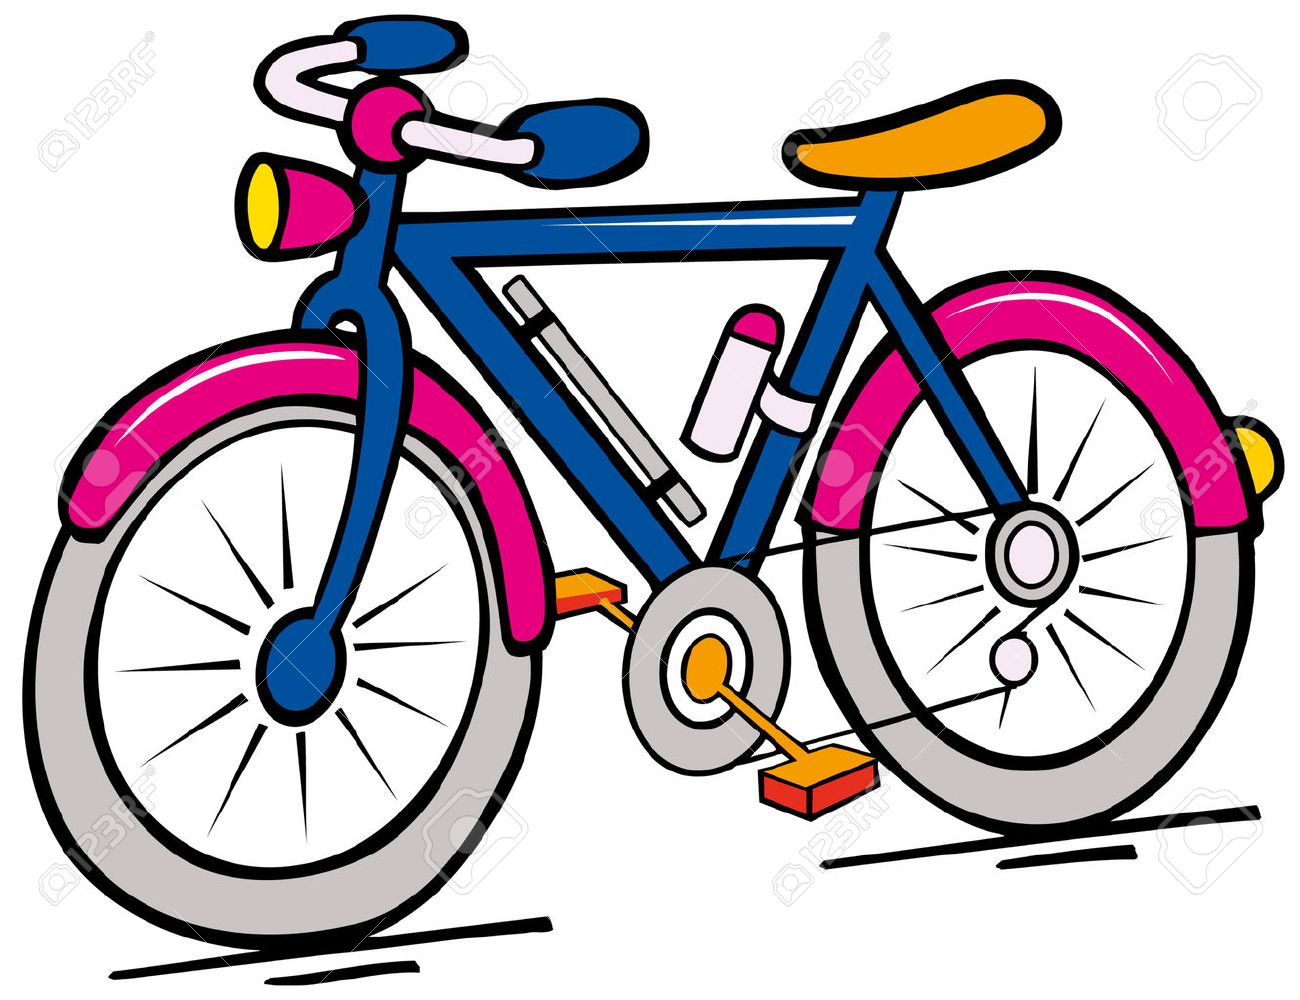 bike cartoon royalty free cliparts vectors and stock illustration rh 123rf com cartoon bikes and scooters cartoon bikes wallpapers